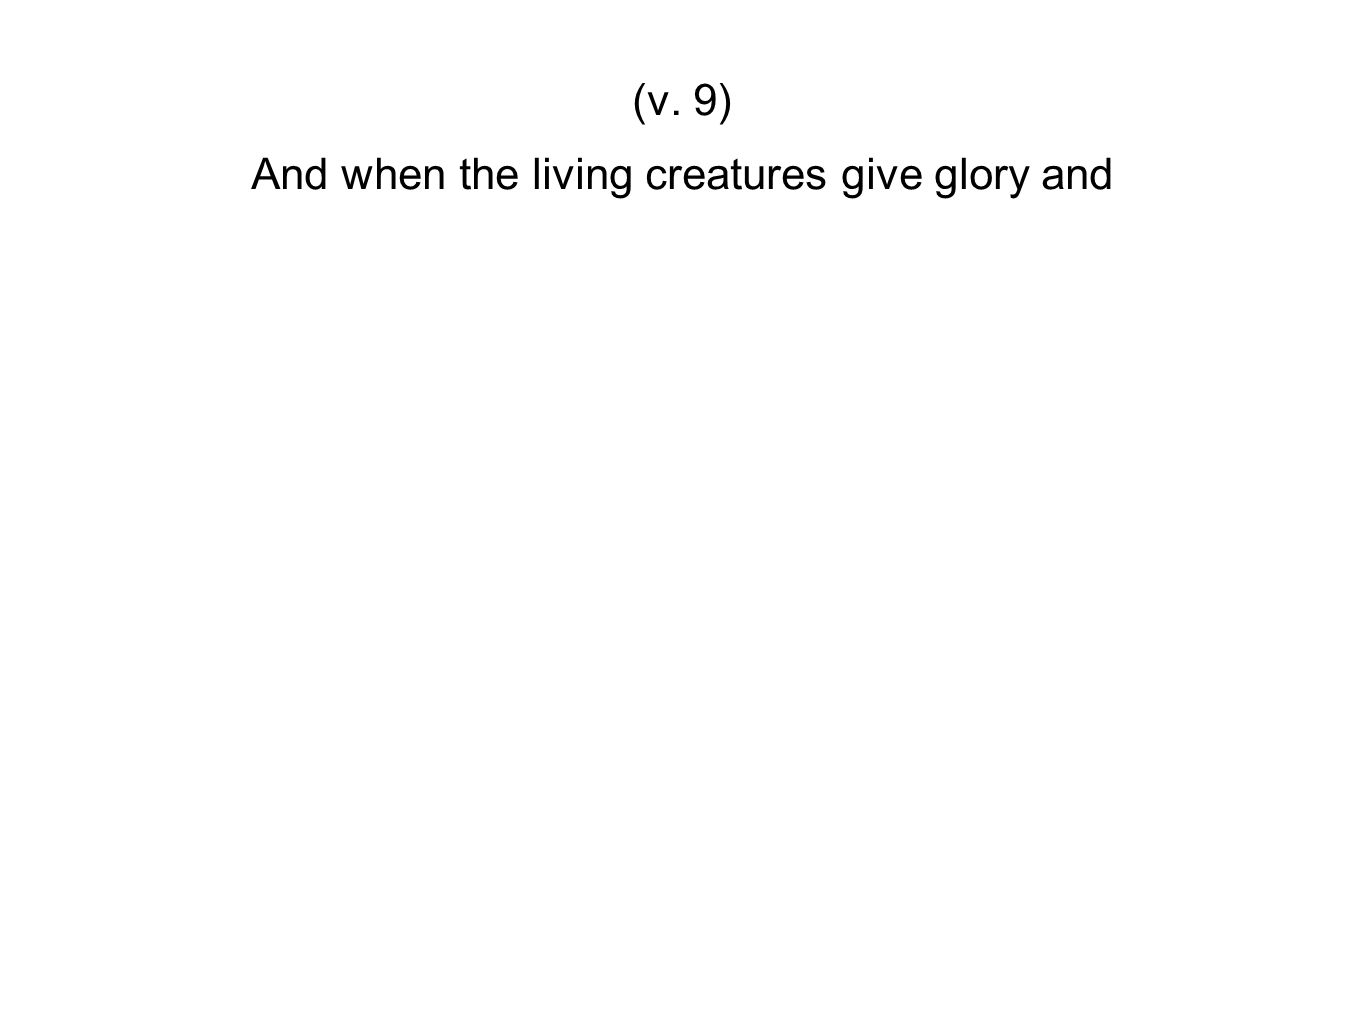 And when the living creatures give glory and